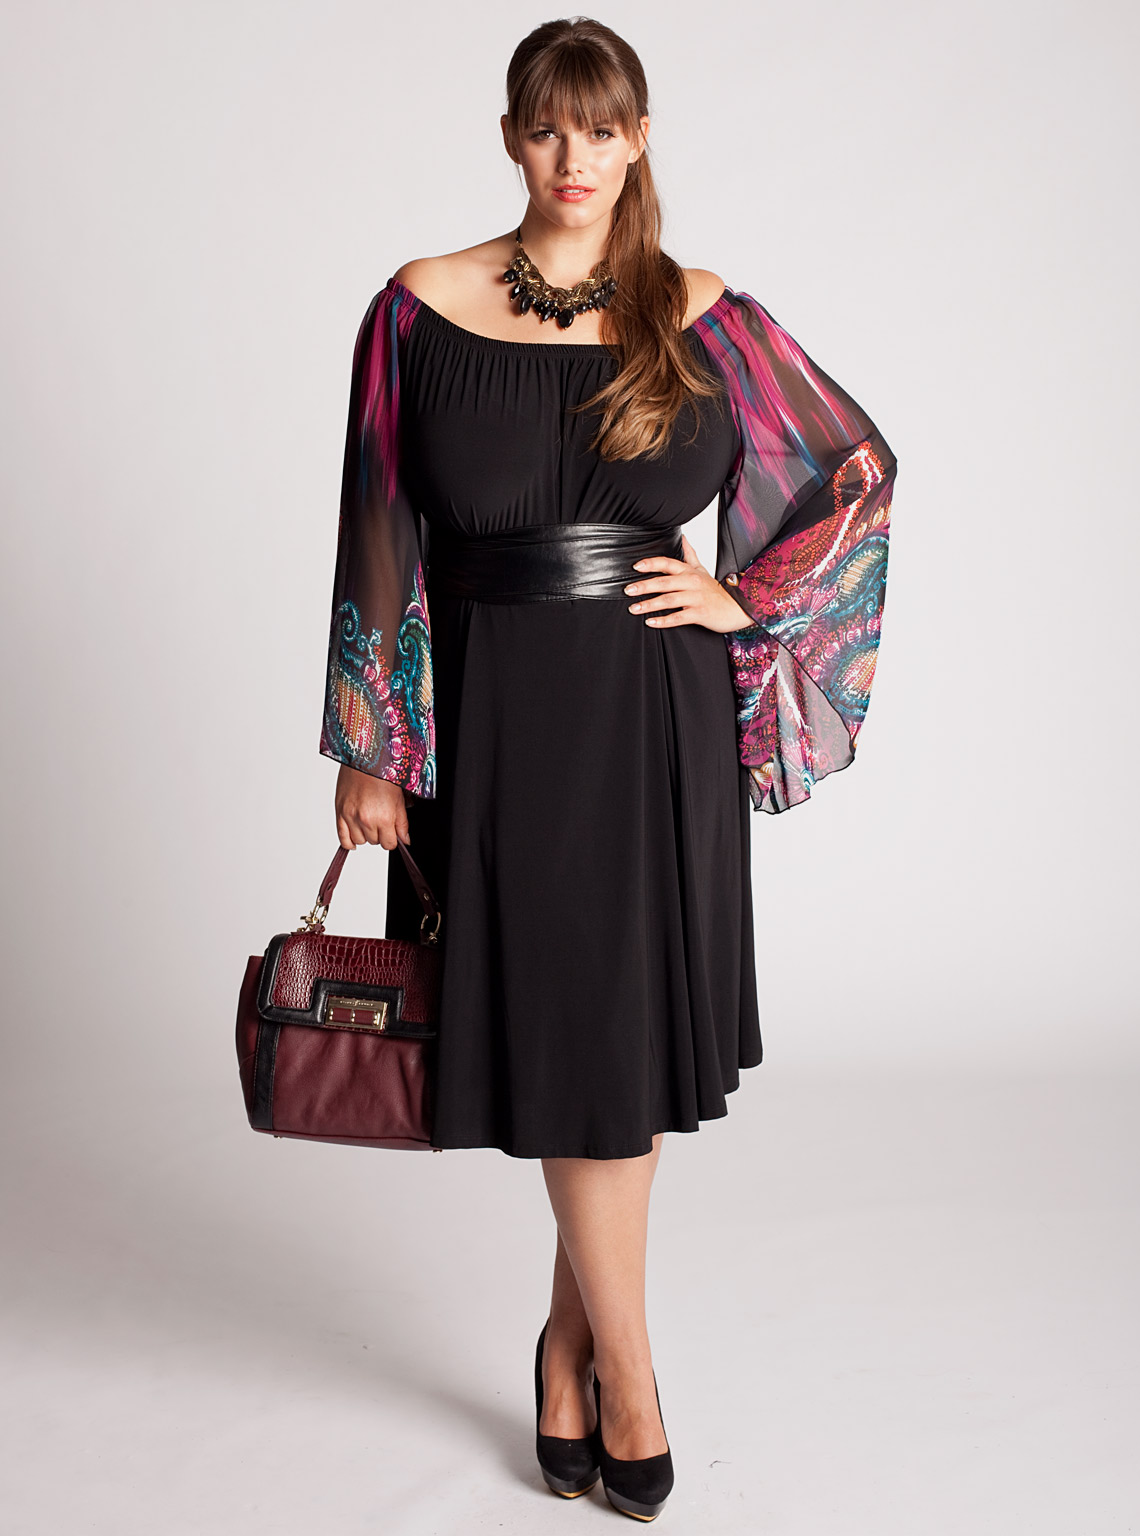 Young Plus Size Dresses 7